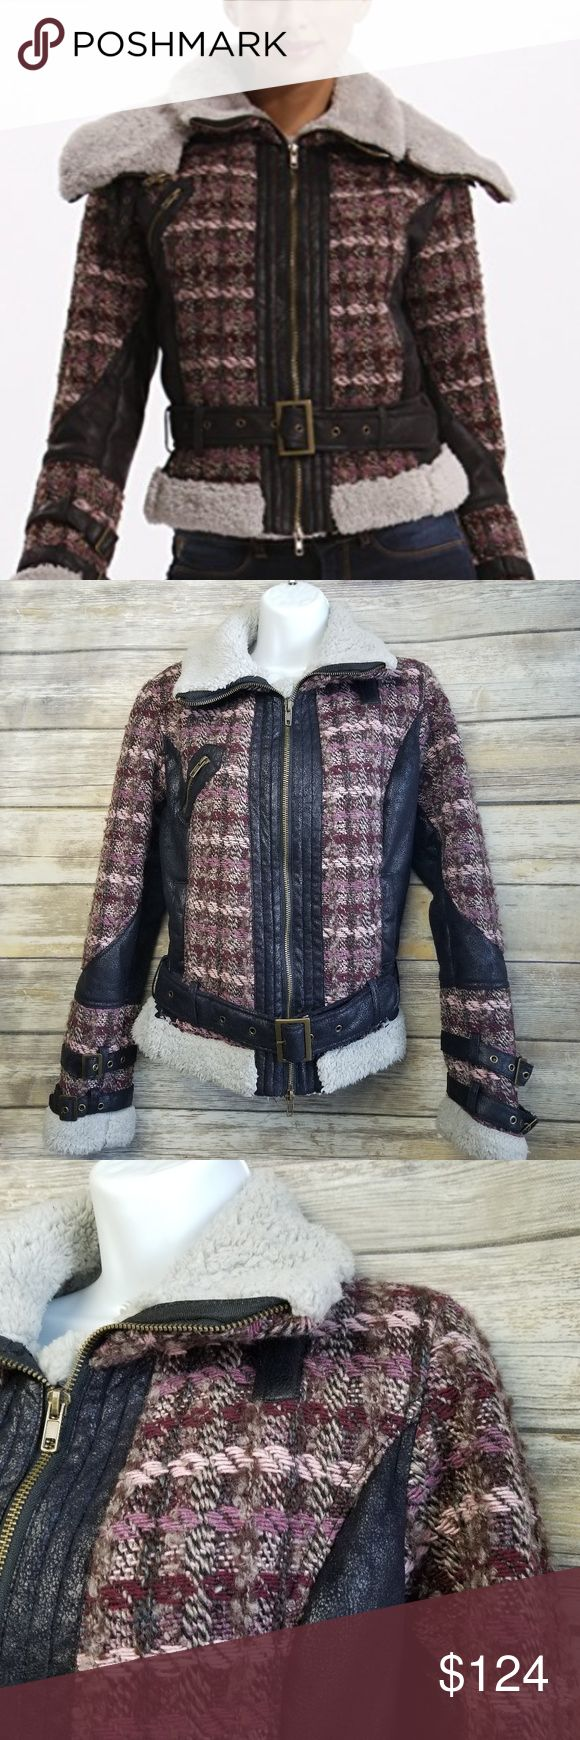 """Desigual Womens Junio Ruby Wine Moto Wool Jacket Desigual Womens Junio Ruby Wine Moto Wool Coat Jacket Sherpa Fur Lined 38 US8 10  No rips, stains, smoke free home.  Pit to pit: 19.5"""" Shoulder to hem: 21.5"""" Desigual Jackets & Coats"""